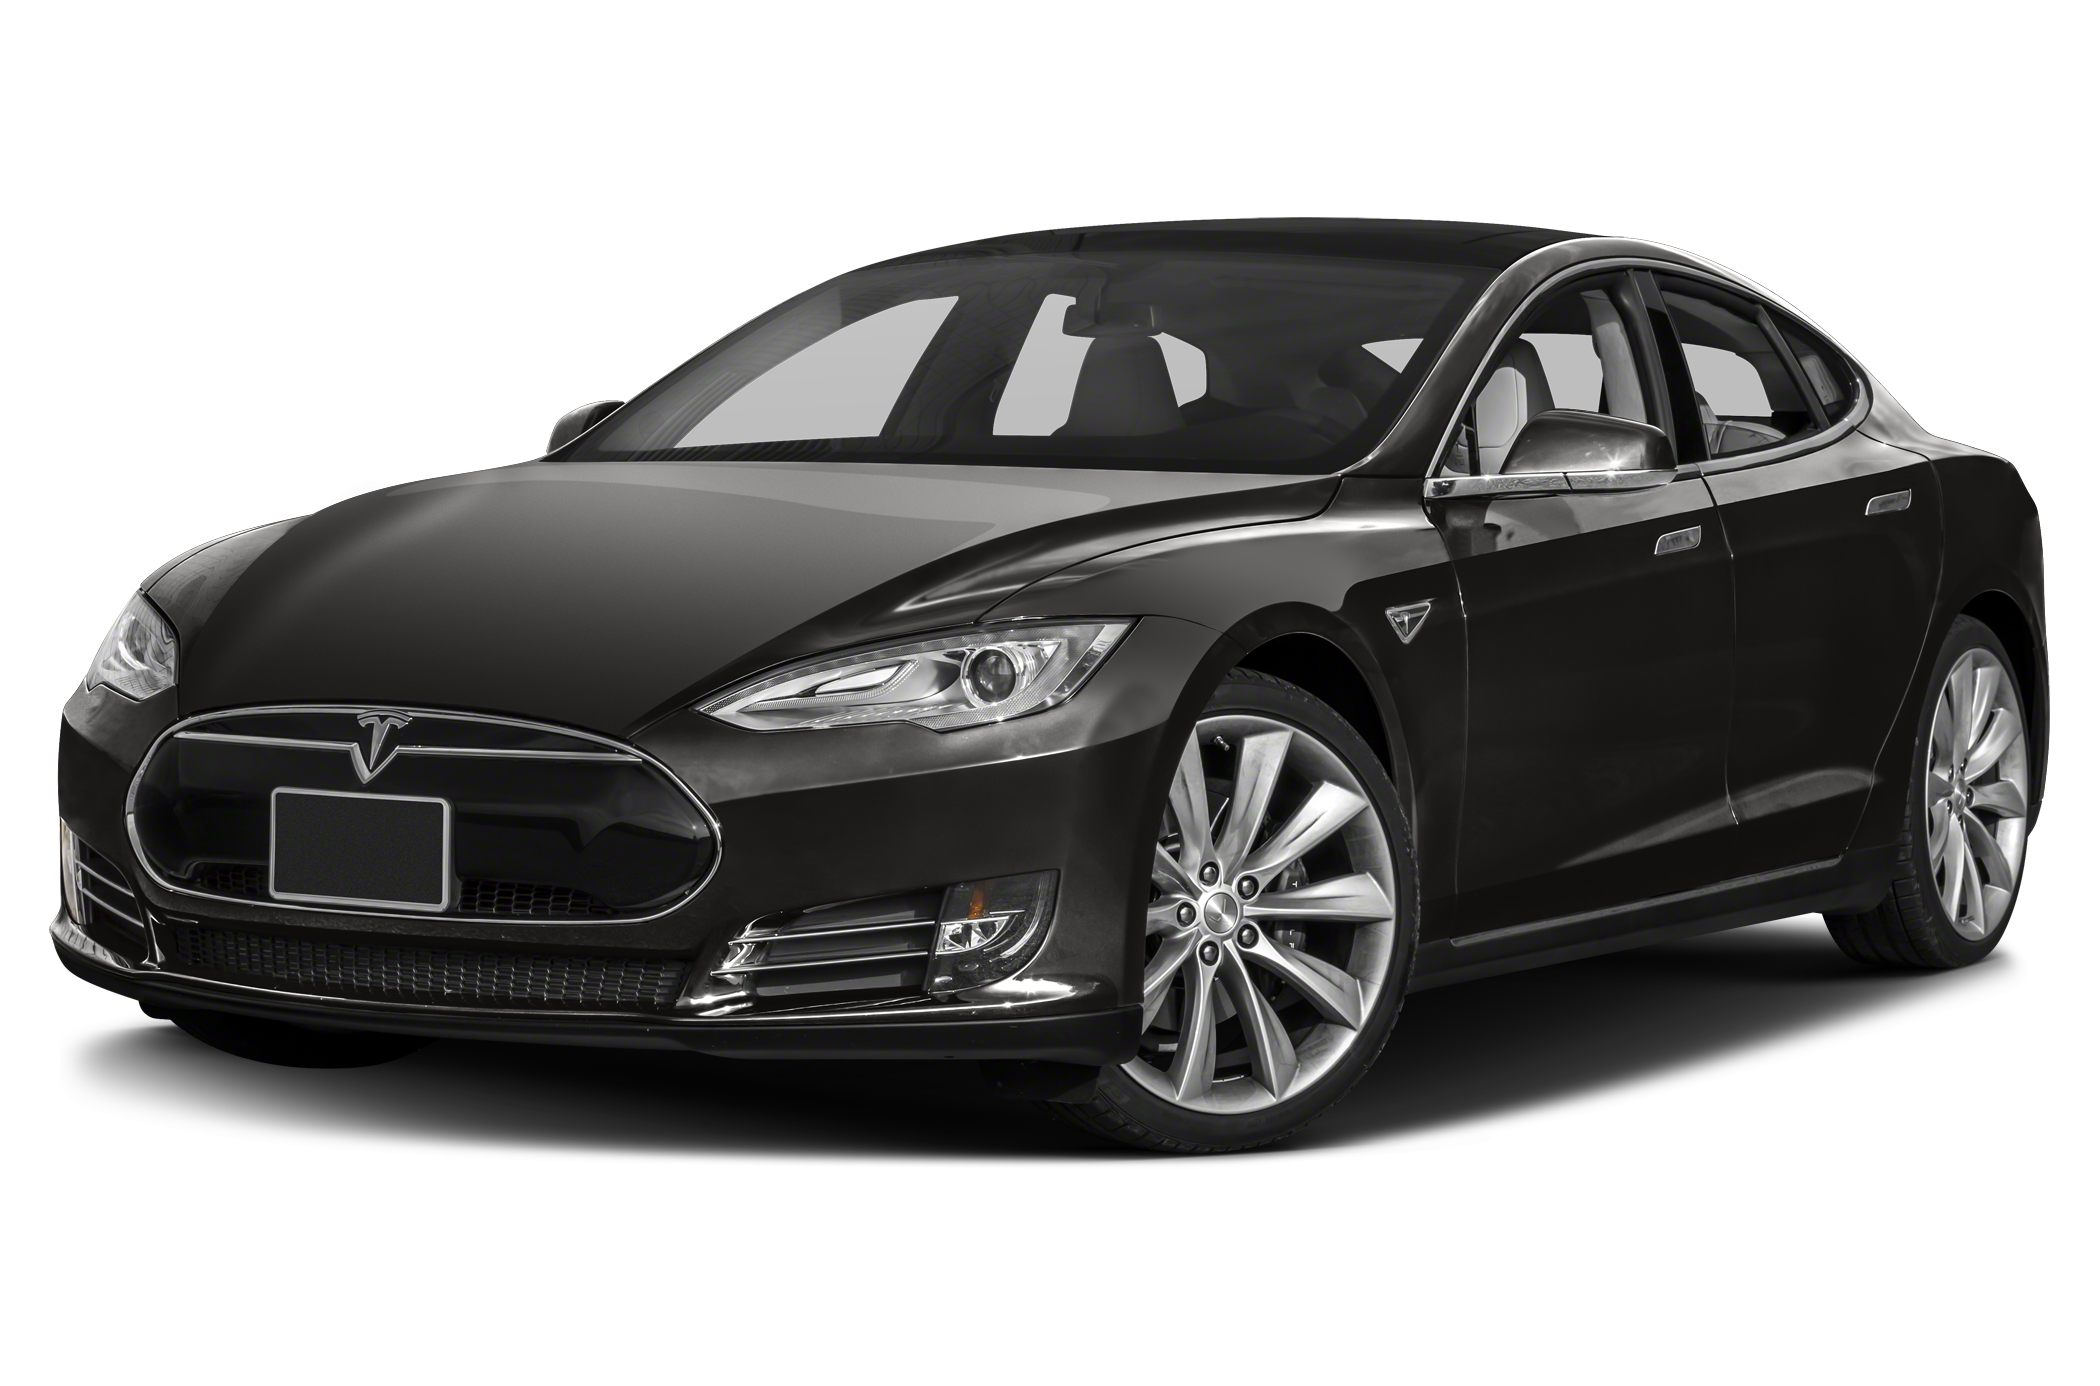 2013 Tesla Model S Performance Sedan for sale in Newport Beach for $87,980 with 12,903 miles.